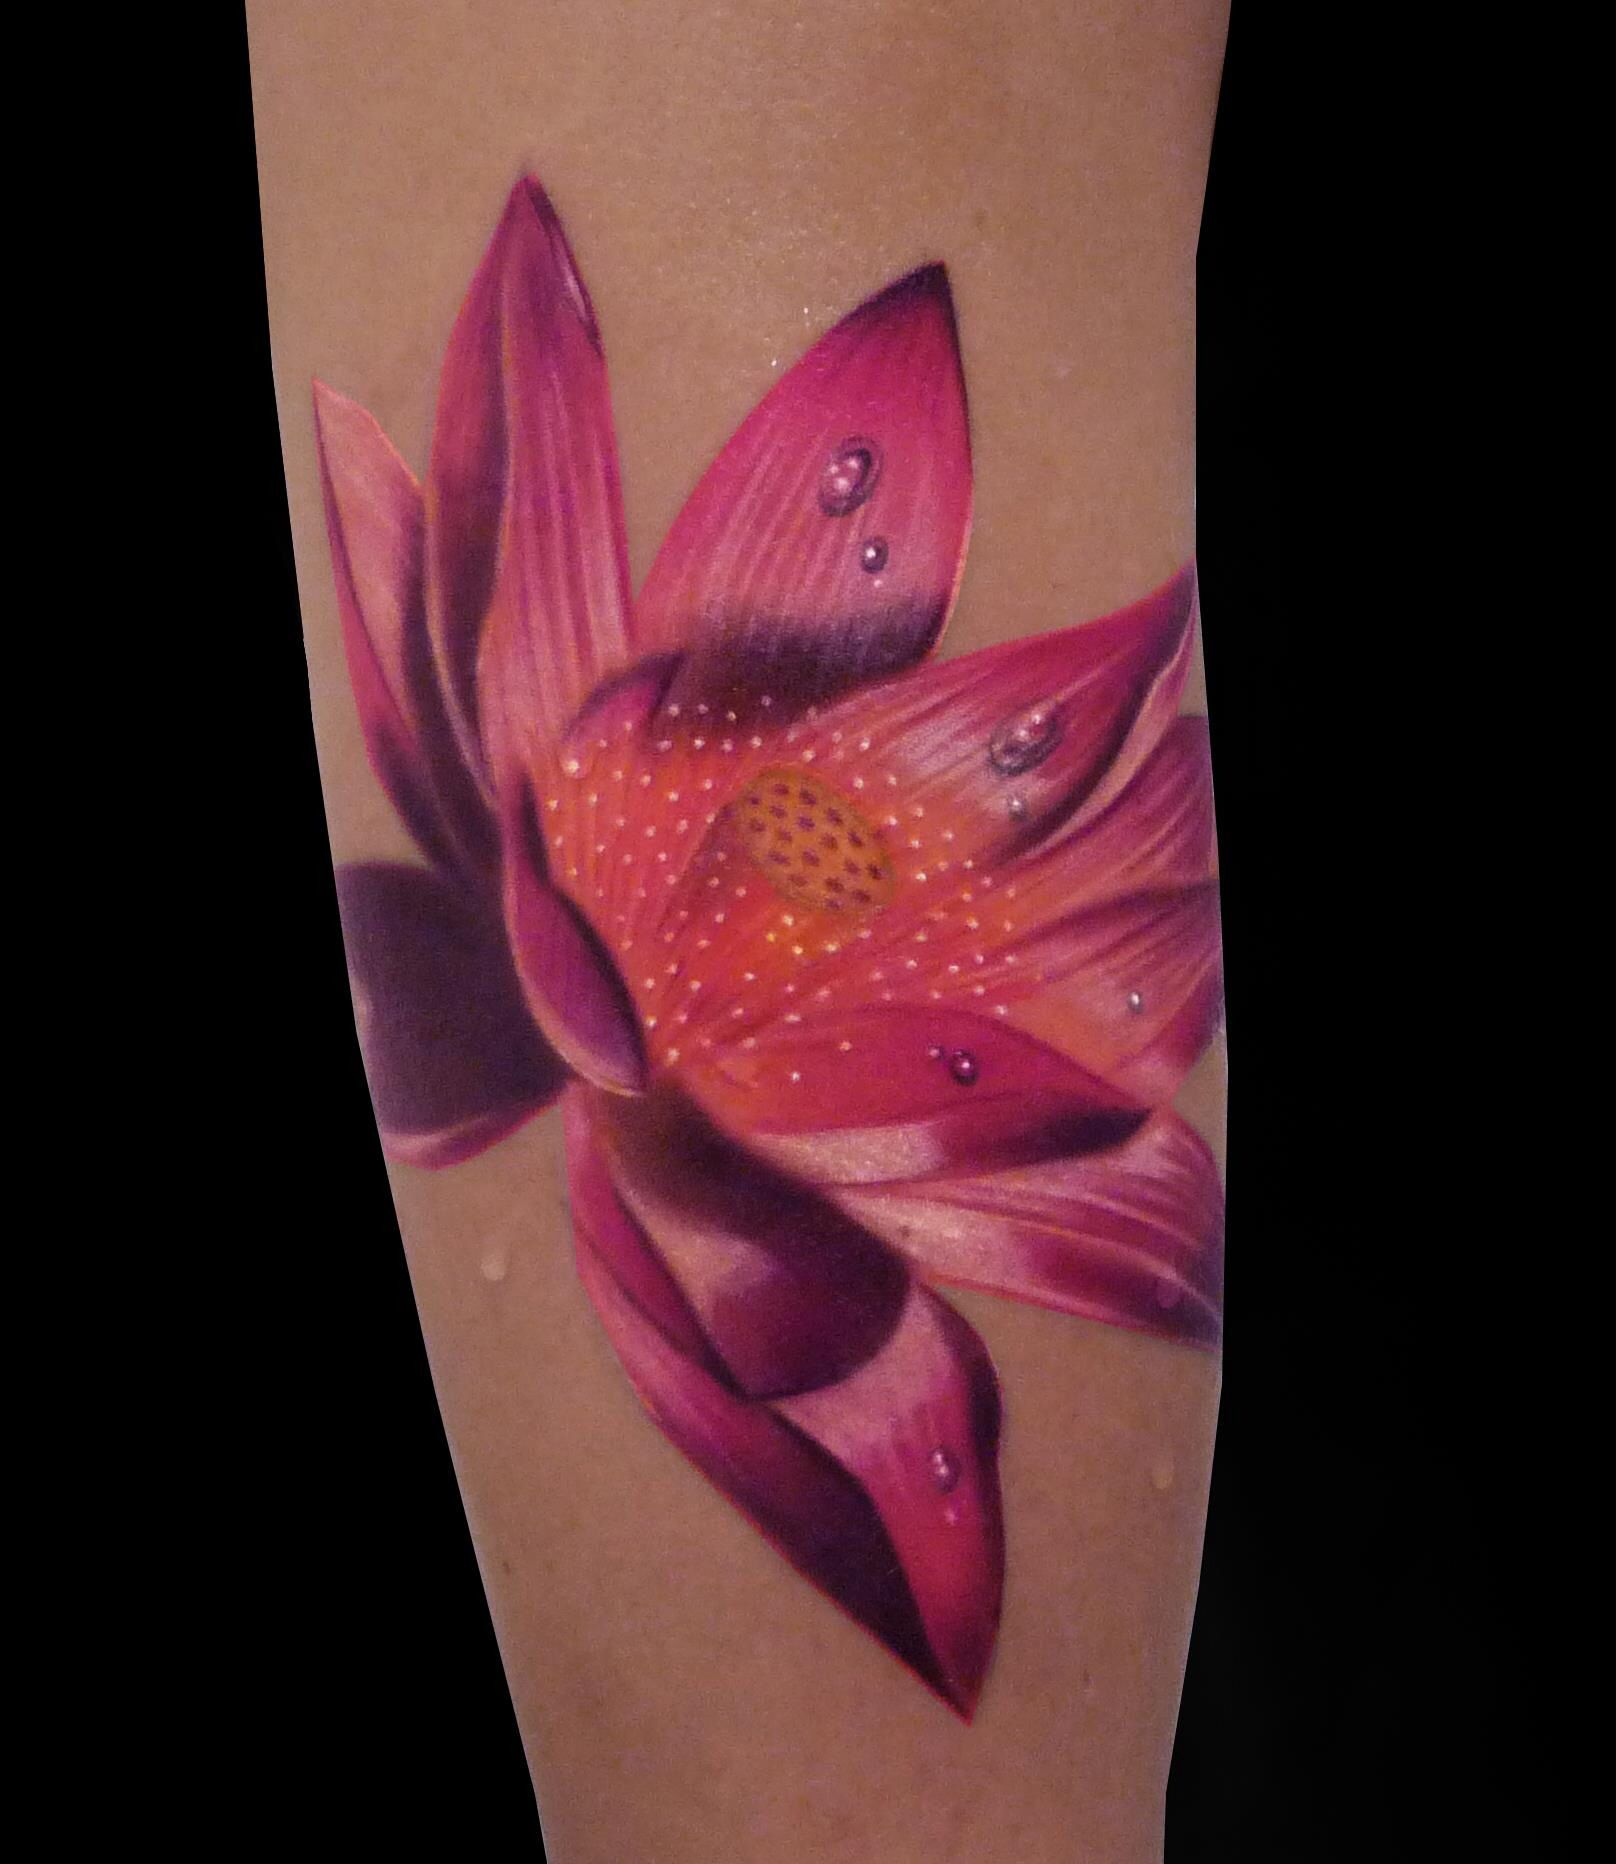 Beautiful flower tattoo tats pinterest beautiful flower beautiful flower tattoo izmirmasajfo